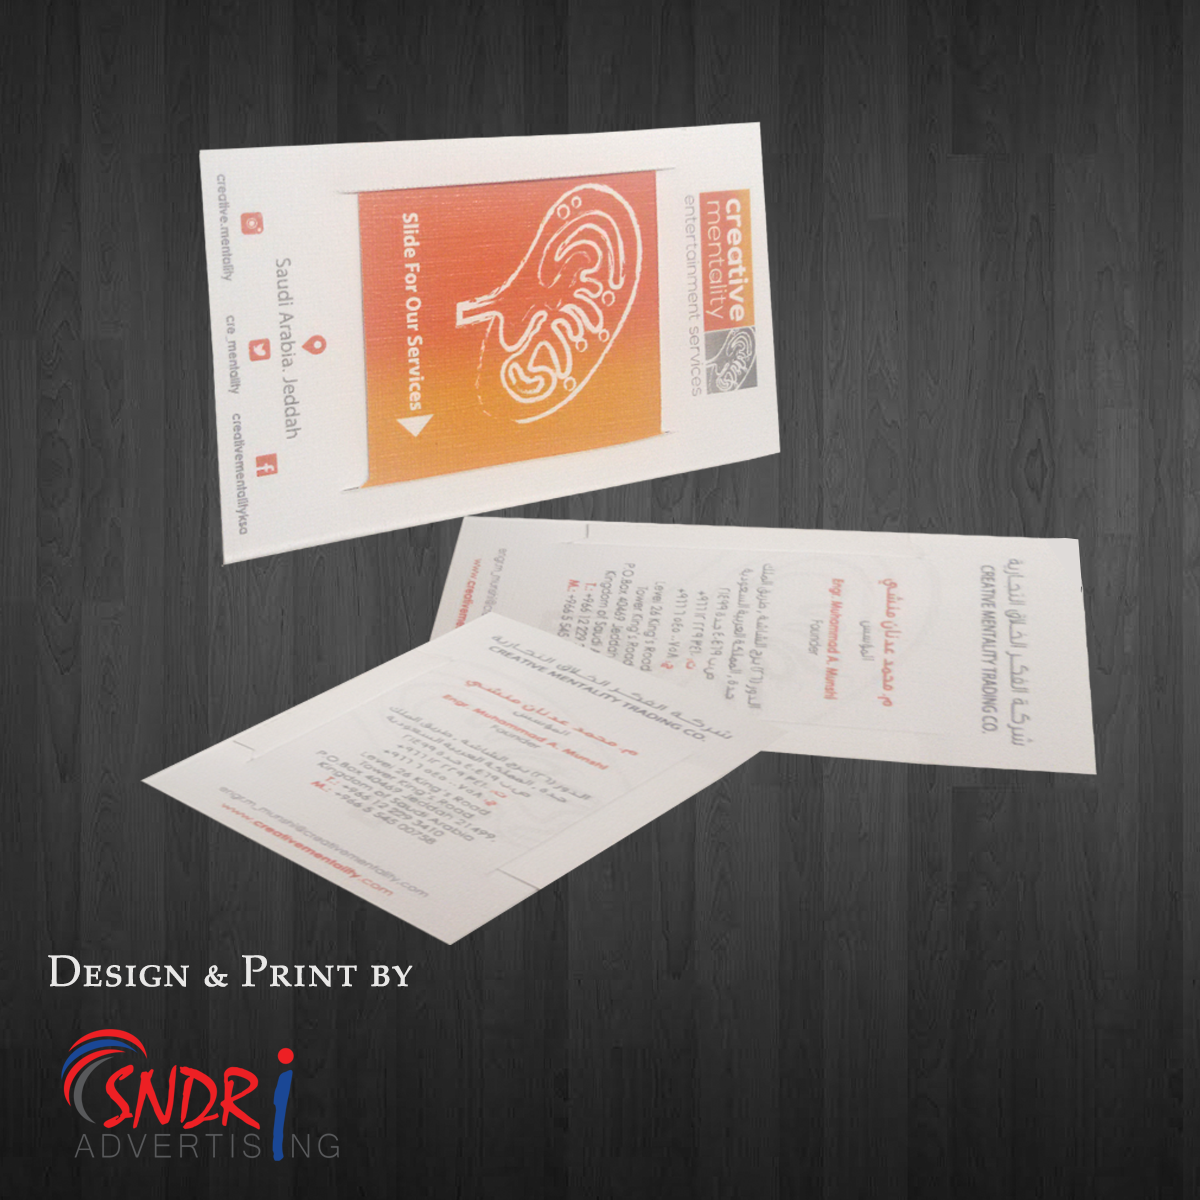 Pin by sndri advertising agency on graphic design services graphic design services business card design business cards card printing card designs lipsense business cards visit cards card patterns reheart Images